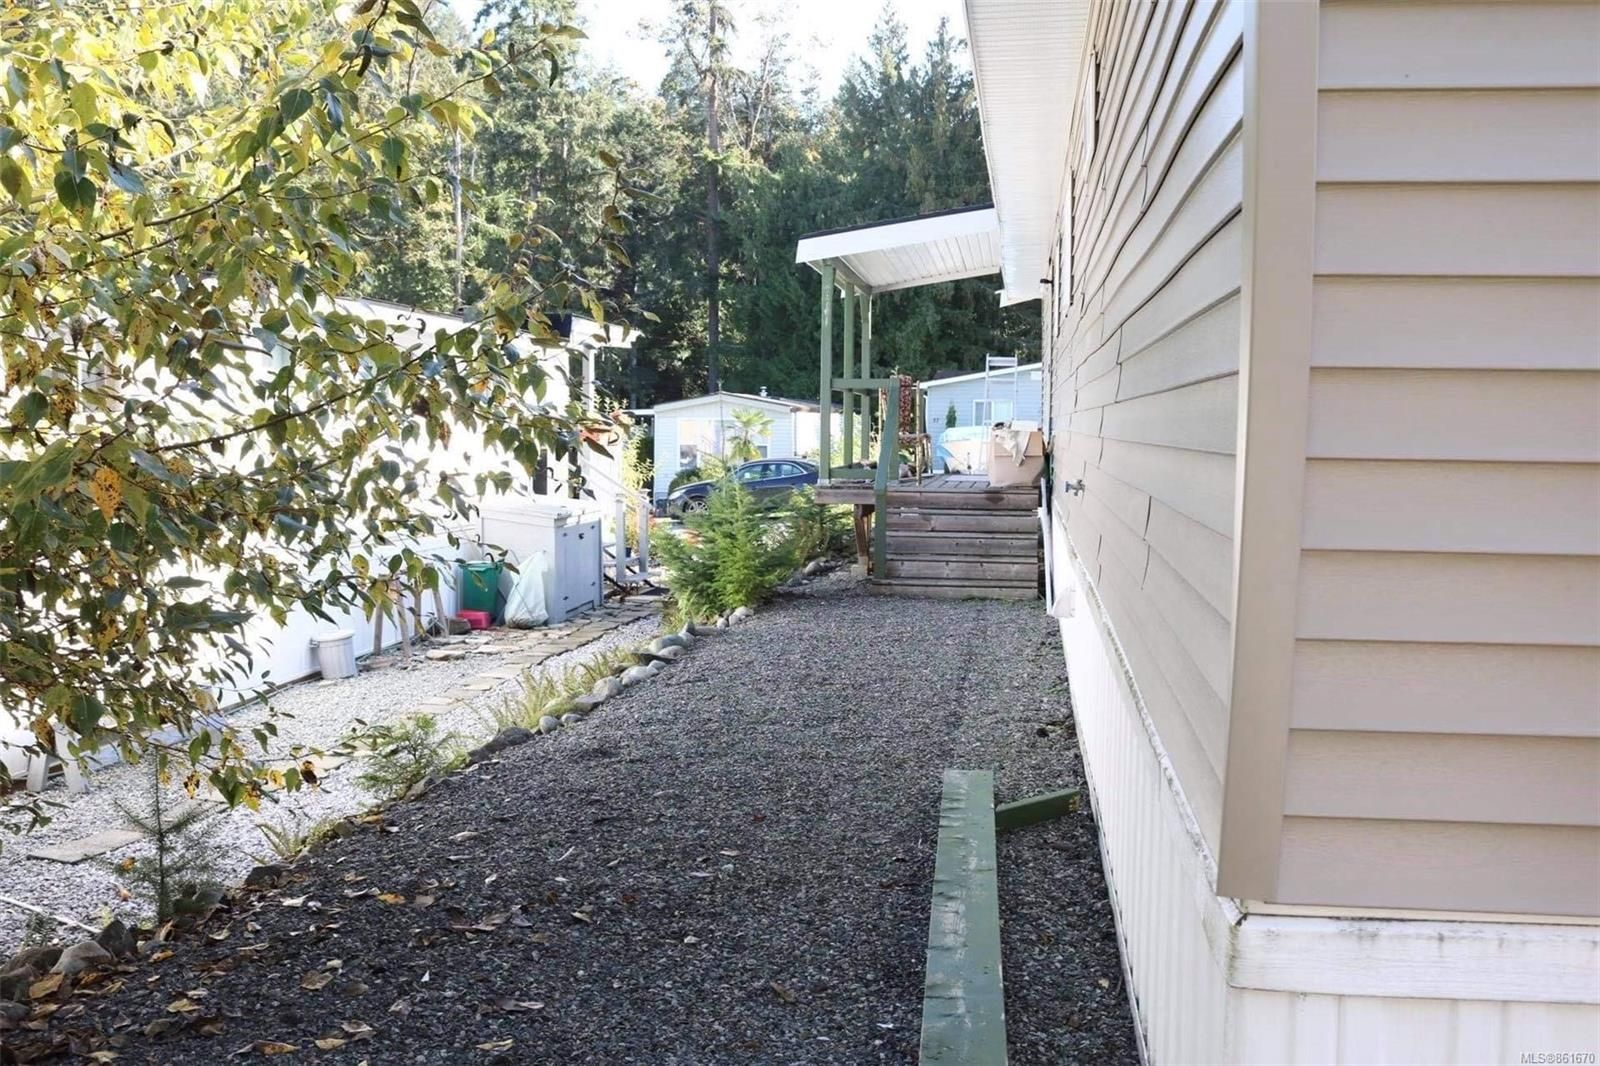 Photo 6: Photos: 23 541 Jim Cram Dr in : Du Ladysmith Manufactured Home for sale (Duncan)  : MLS®# 861670